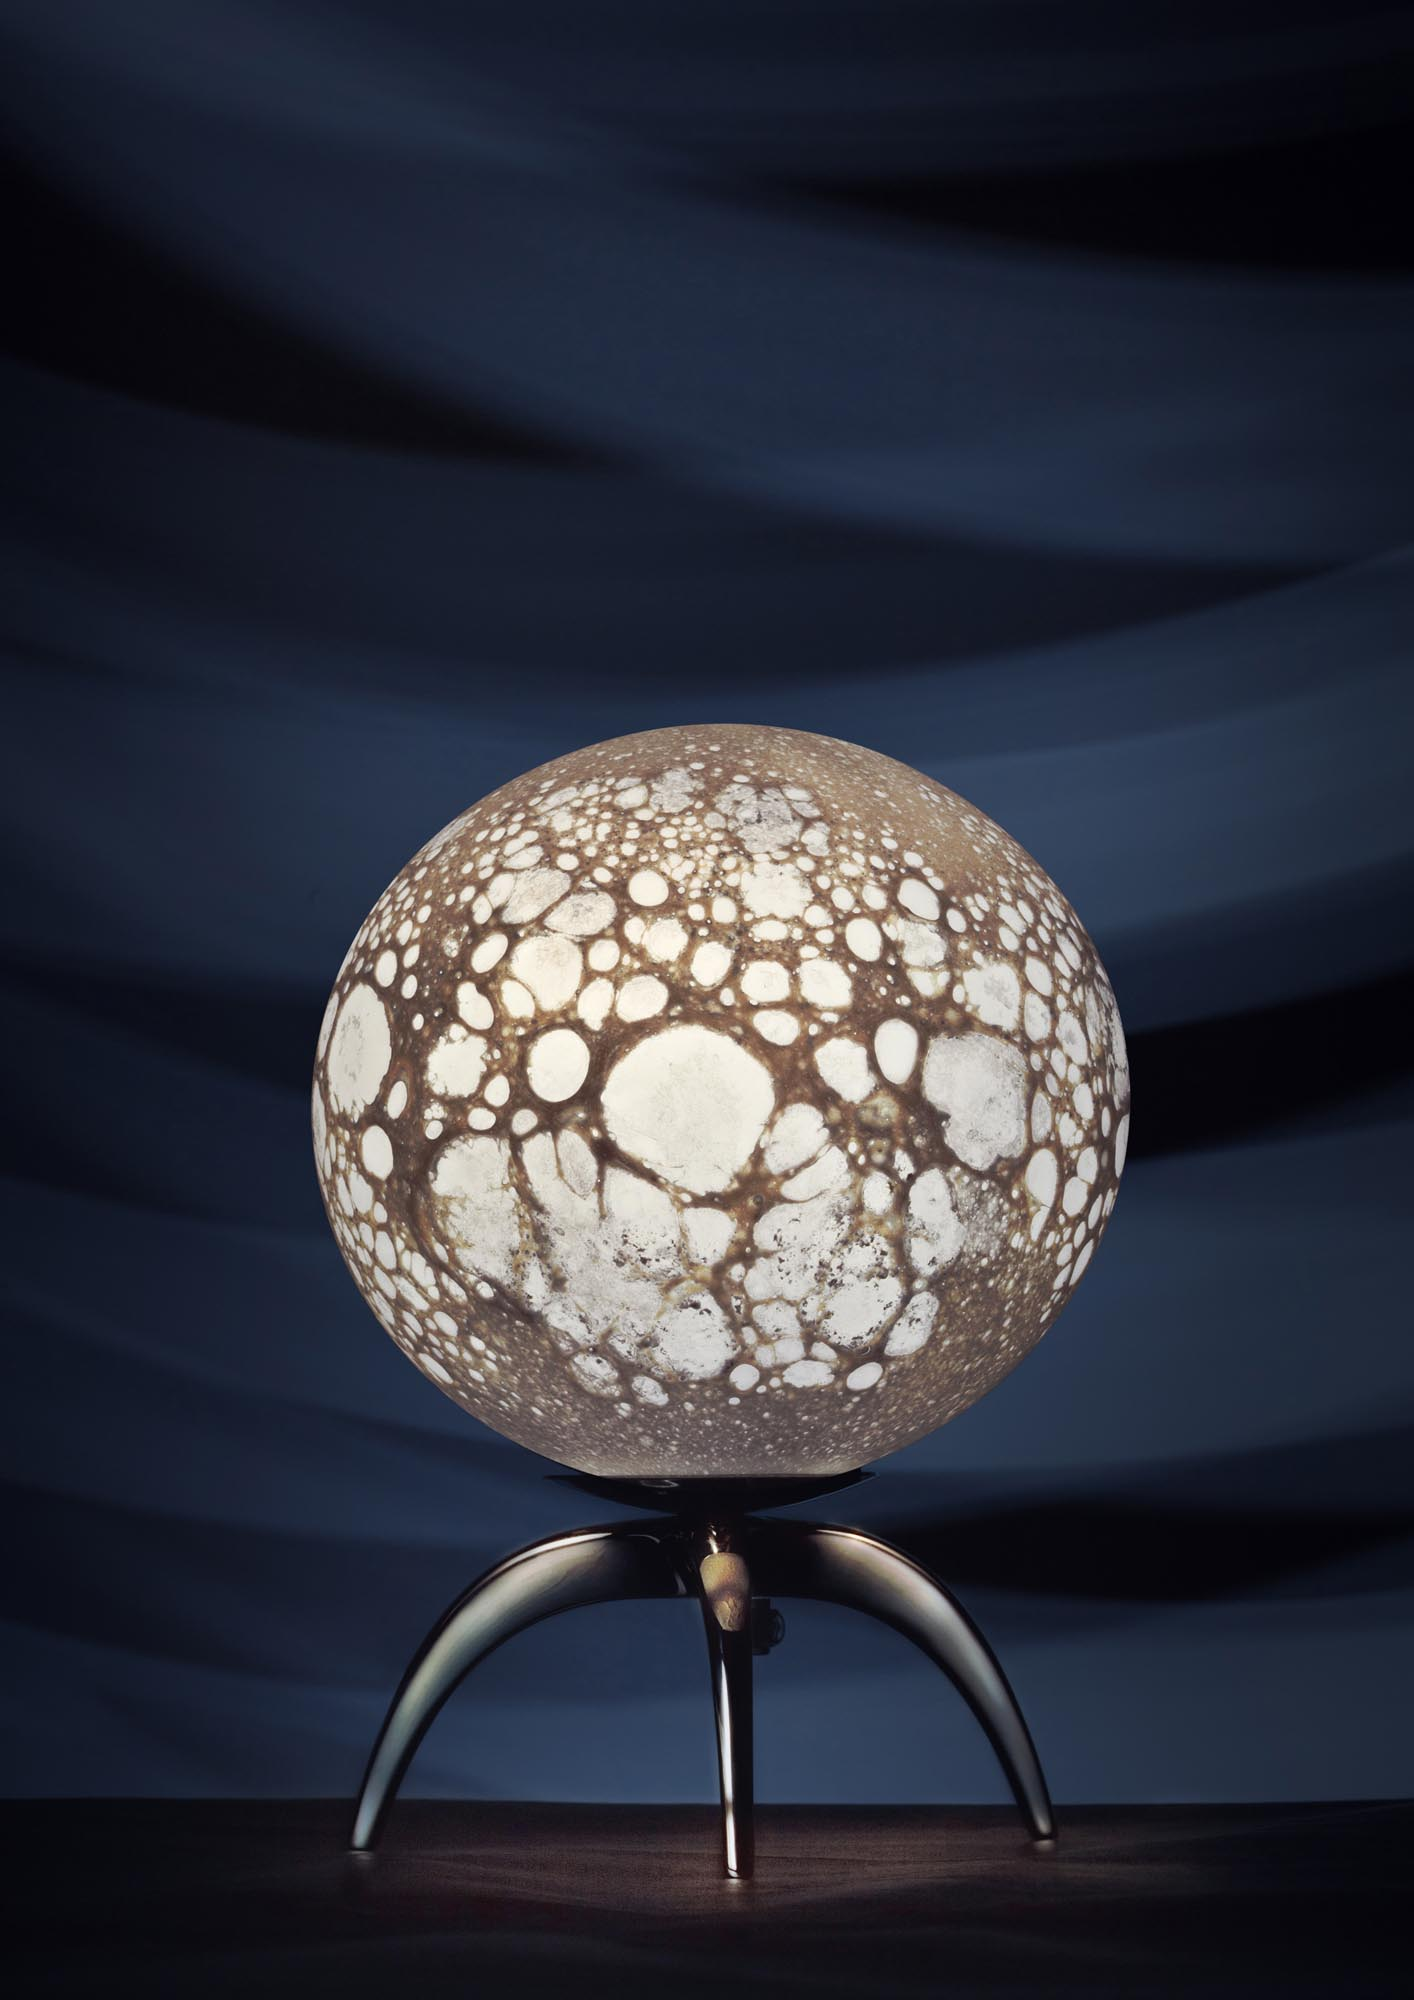 Lune LEM table lamp, H 20 x diam. 14cm